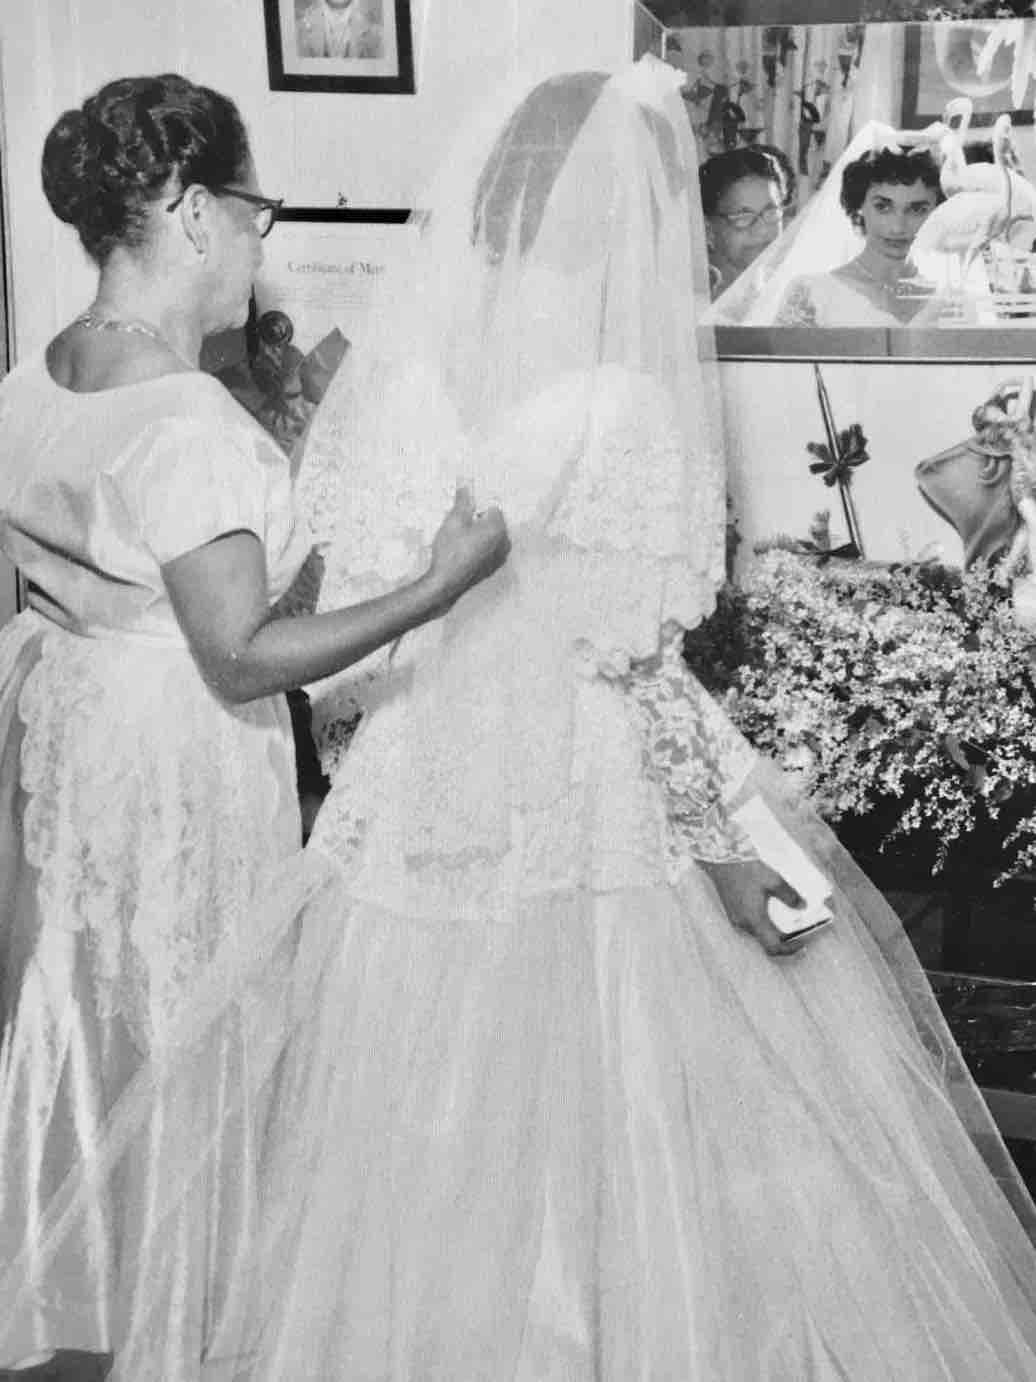 Virgin Islands wedding of Leah Sasso and William Stevens in St Thomas 1955 at the altar,